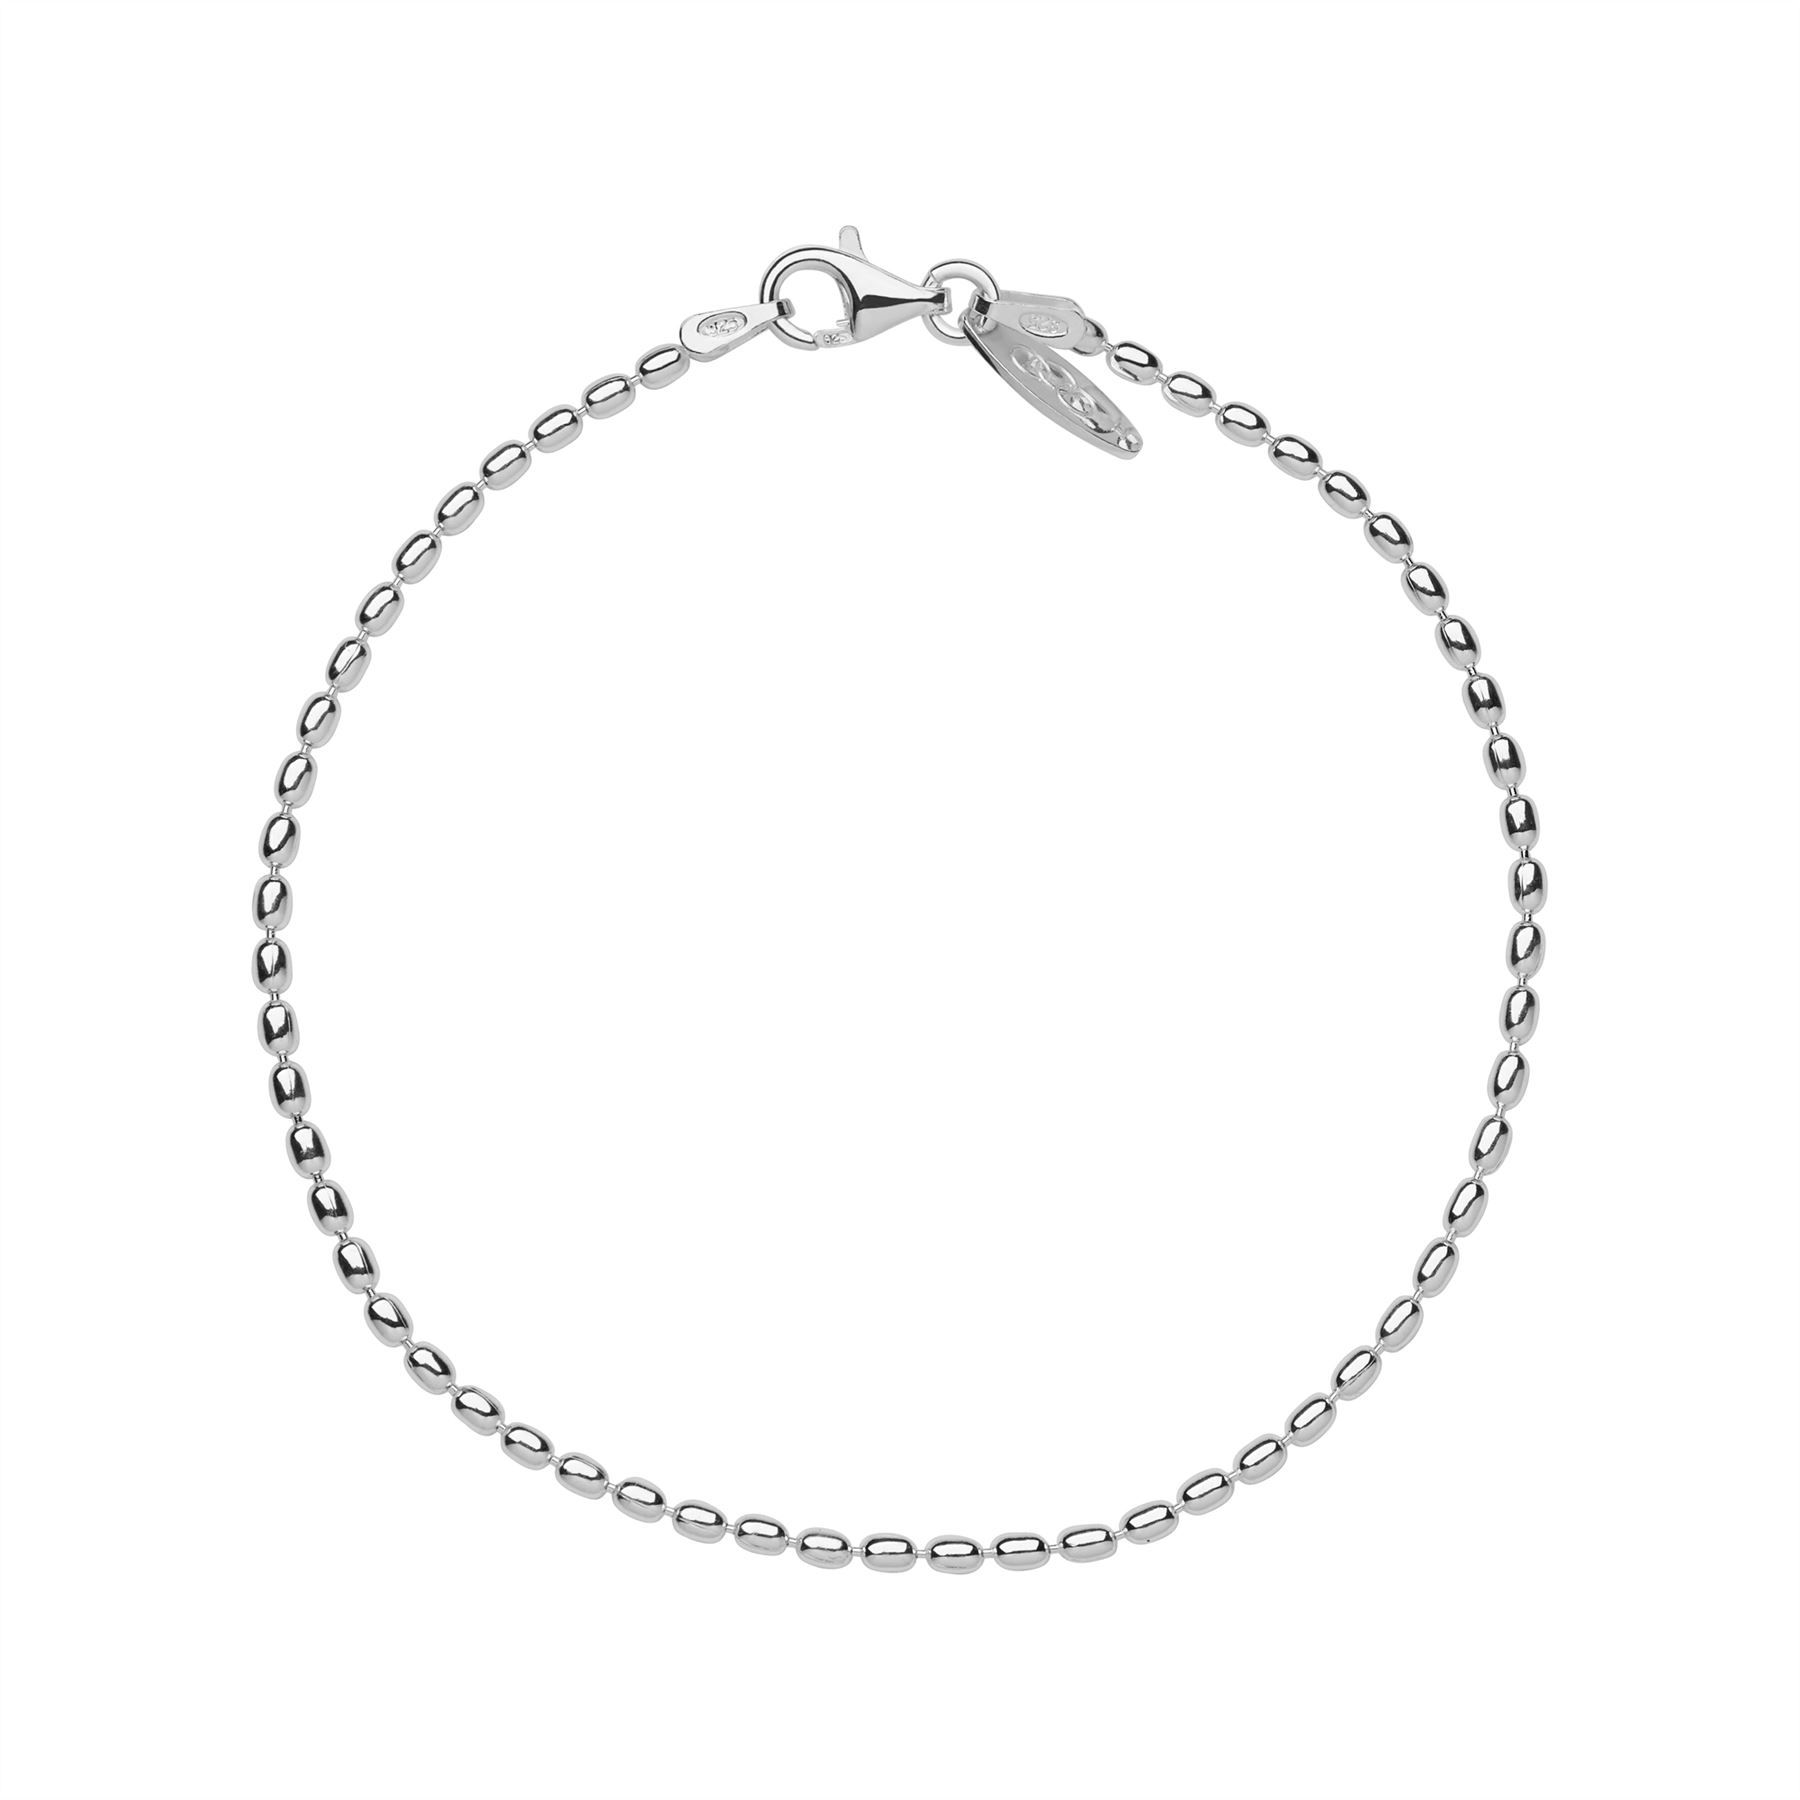 """Details about Links of London Womens Essentials Sterling Silver Oval Ball  Chain Bracelet 7.5"""" 638ad69ae"""